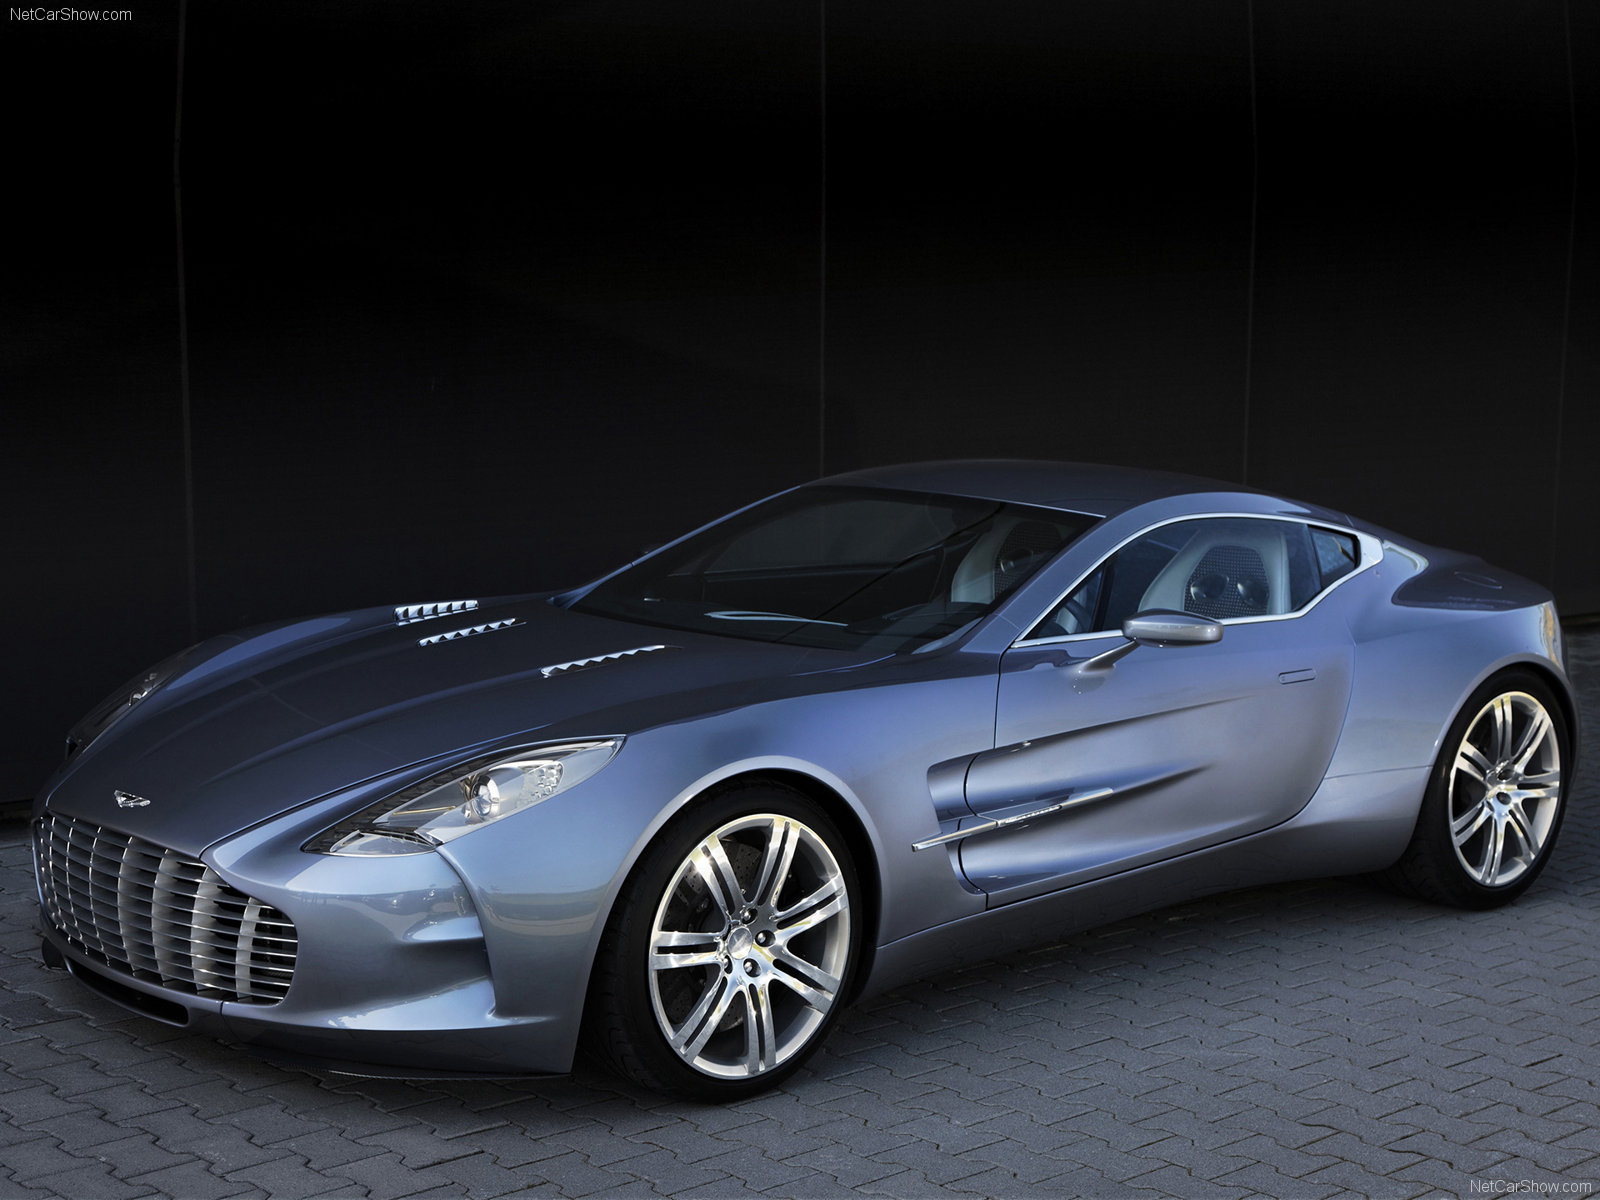 Aston Martin One-77 Wallpapers - Car Wallpapers